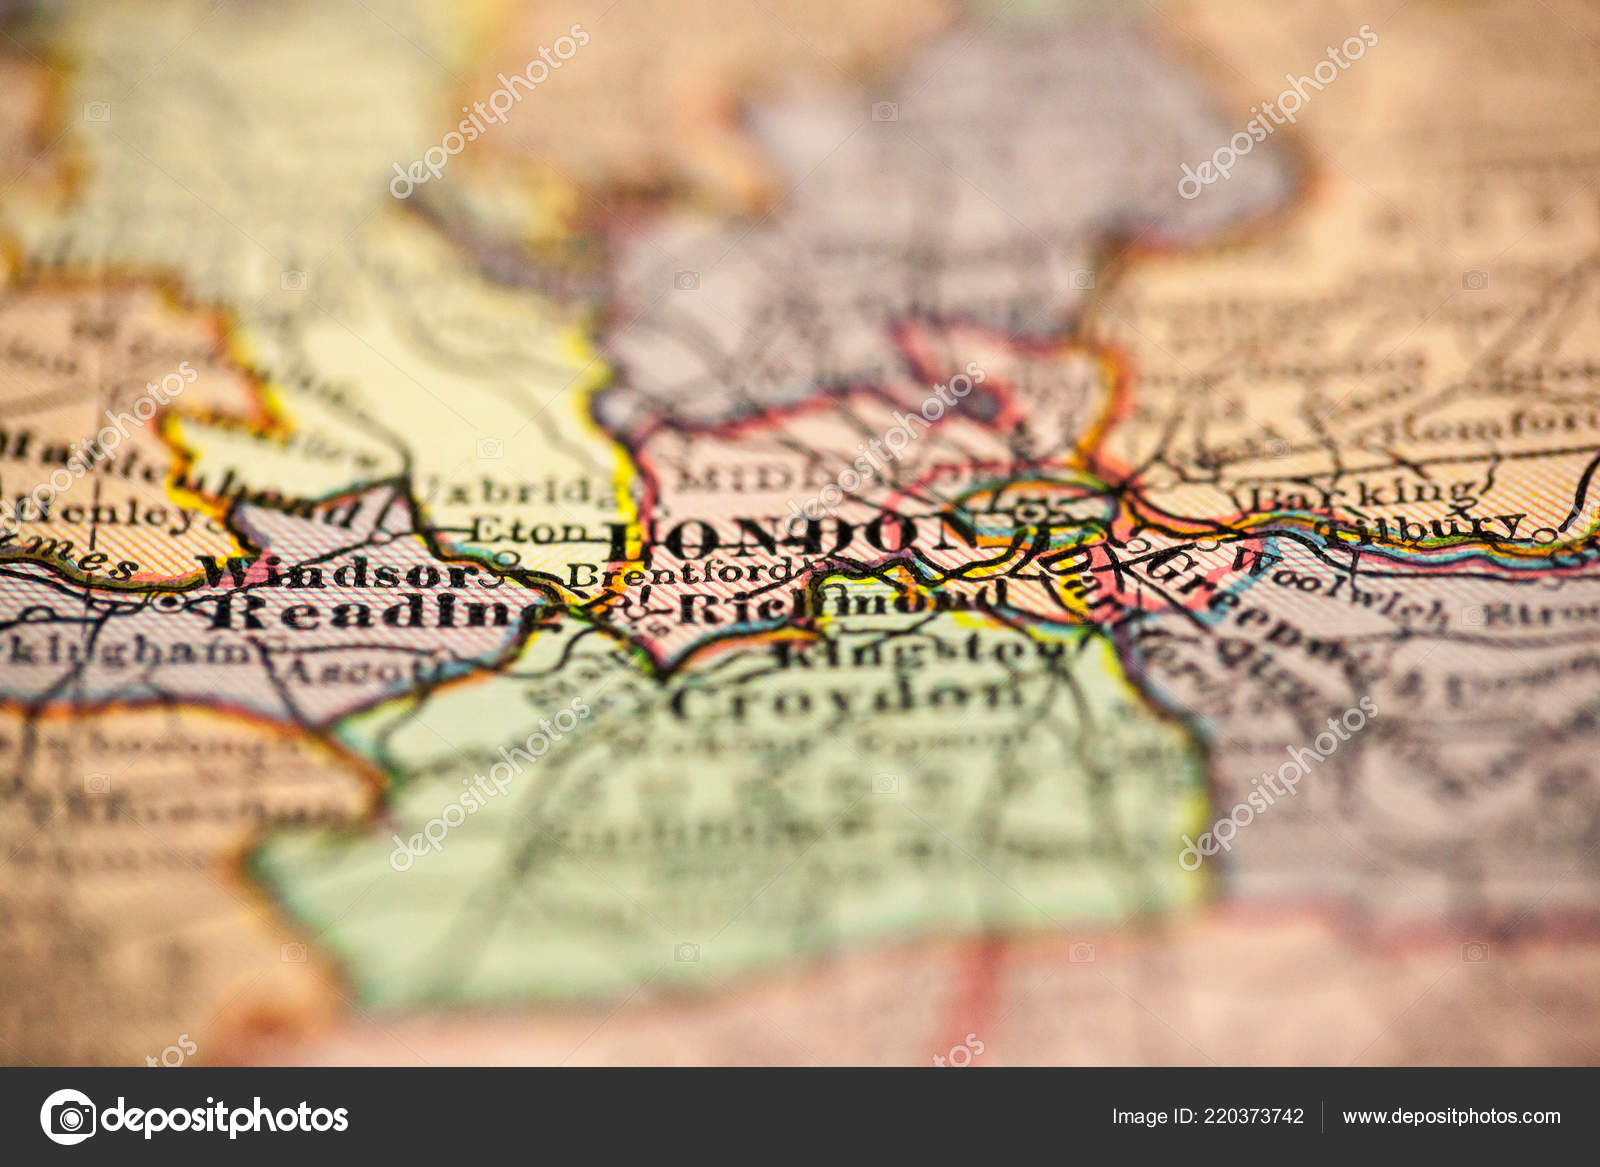 London In England Map.London England Point Focus Vintage Map Stock Photo C Luvemak